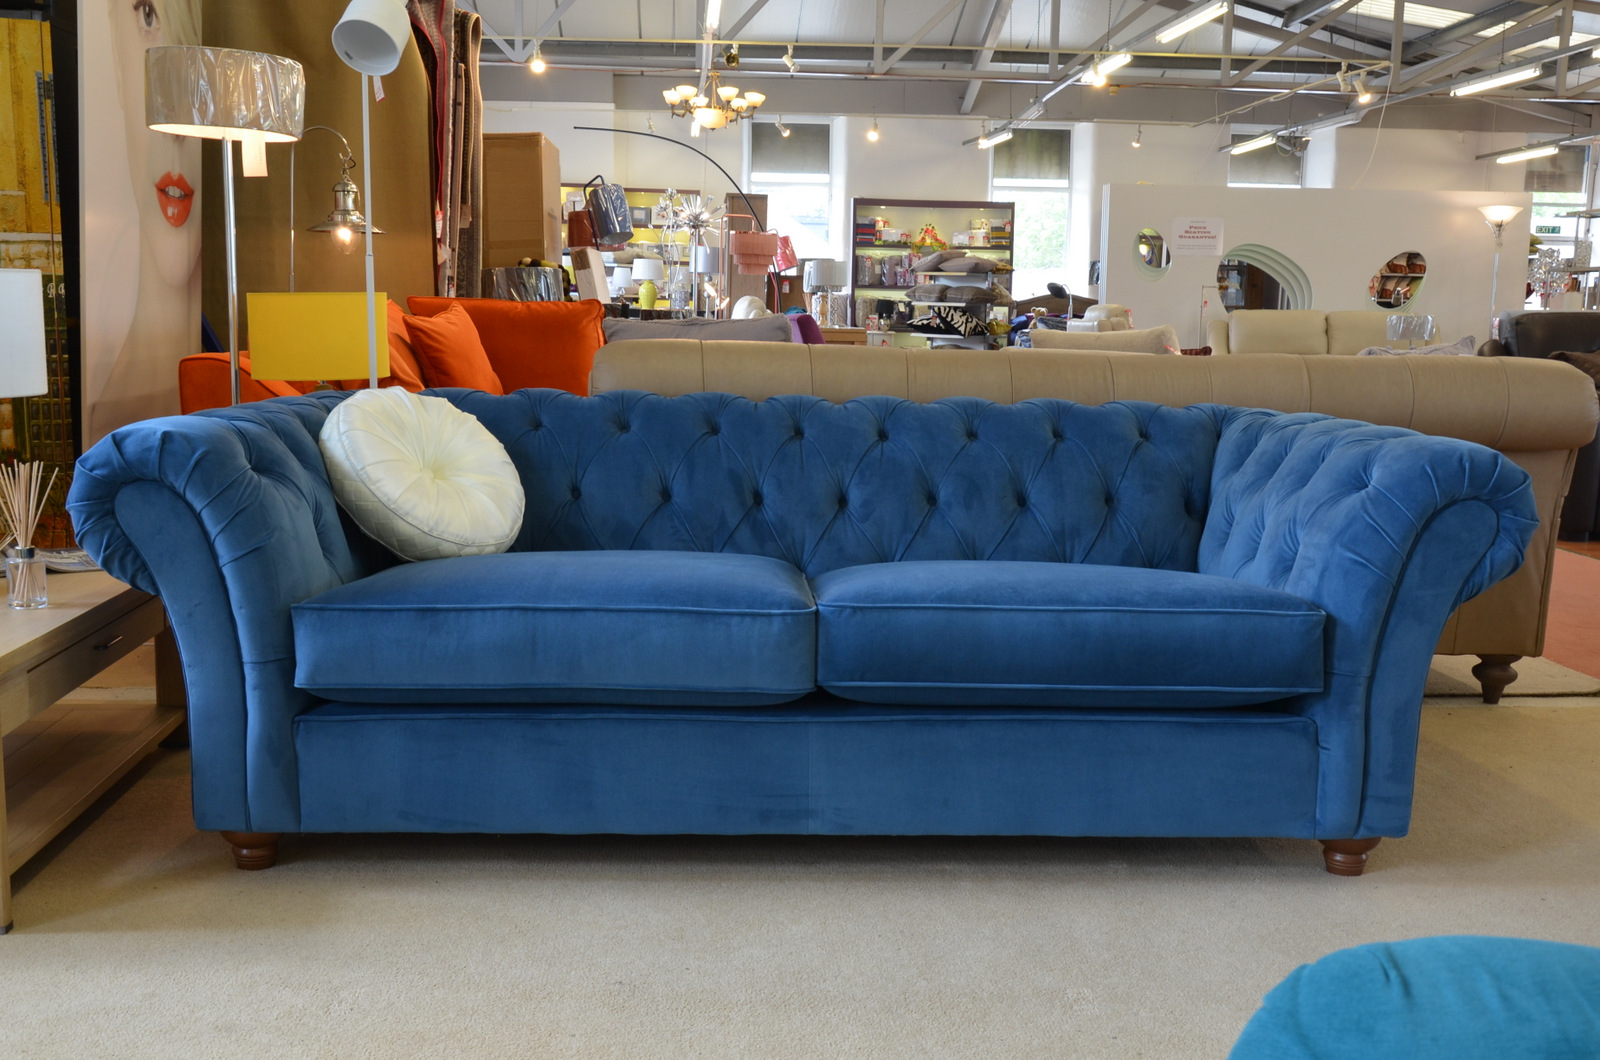 Brand New Chesterfield Sofas In Stock This Week!